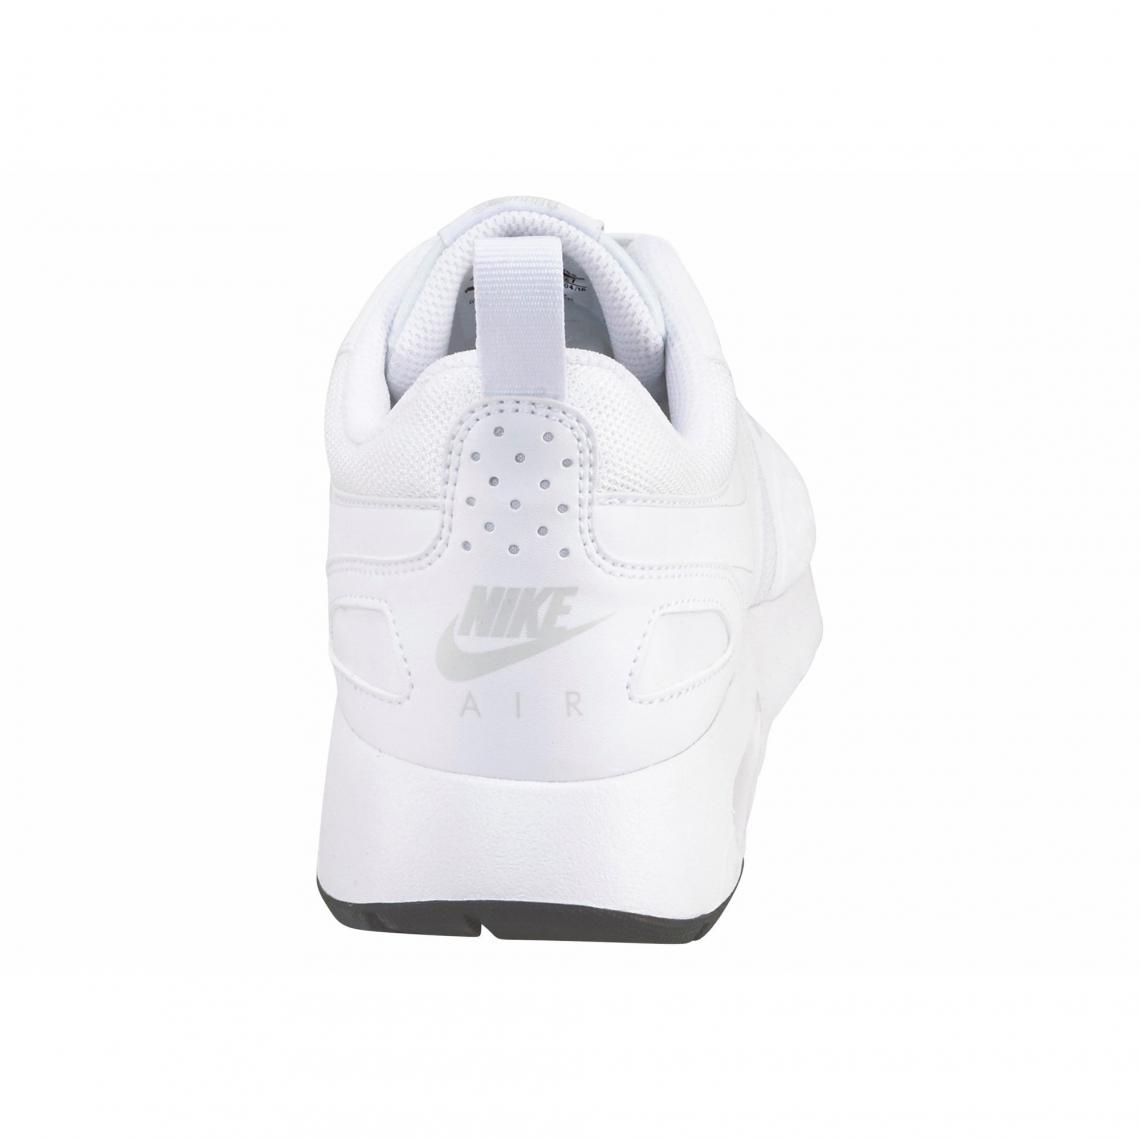 Nike Vision Chaussures Suisses Max Homme Air Sport Blanc3 CxoWBderQE